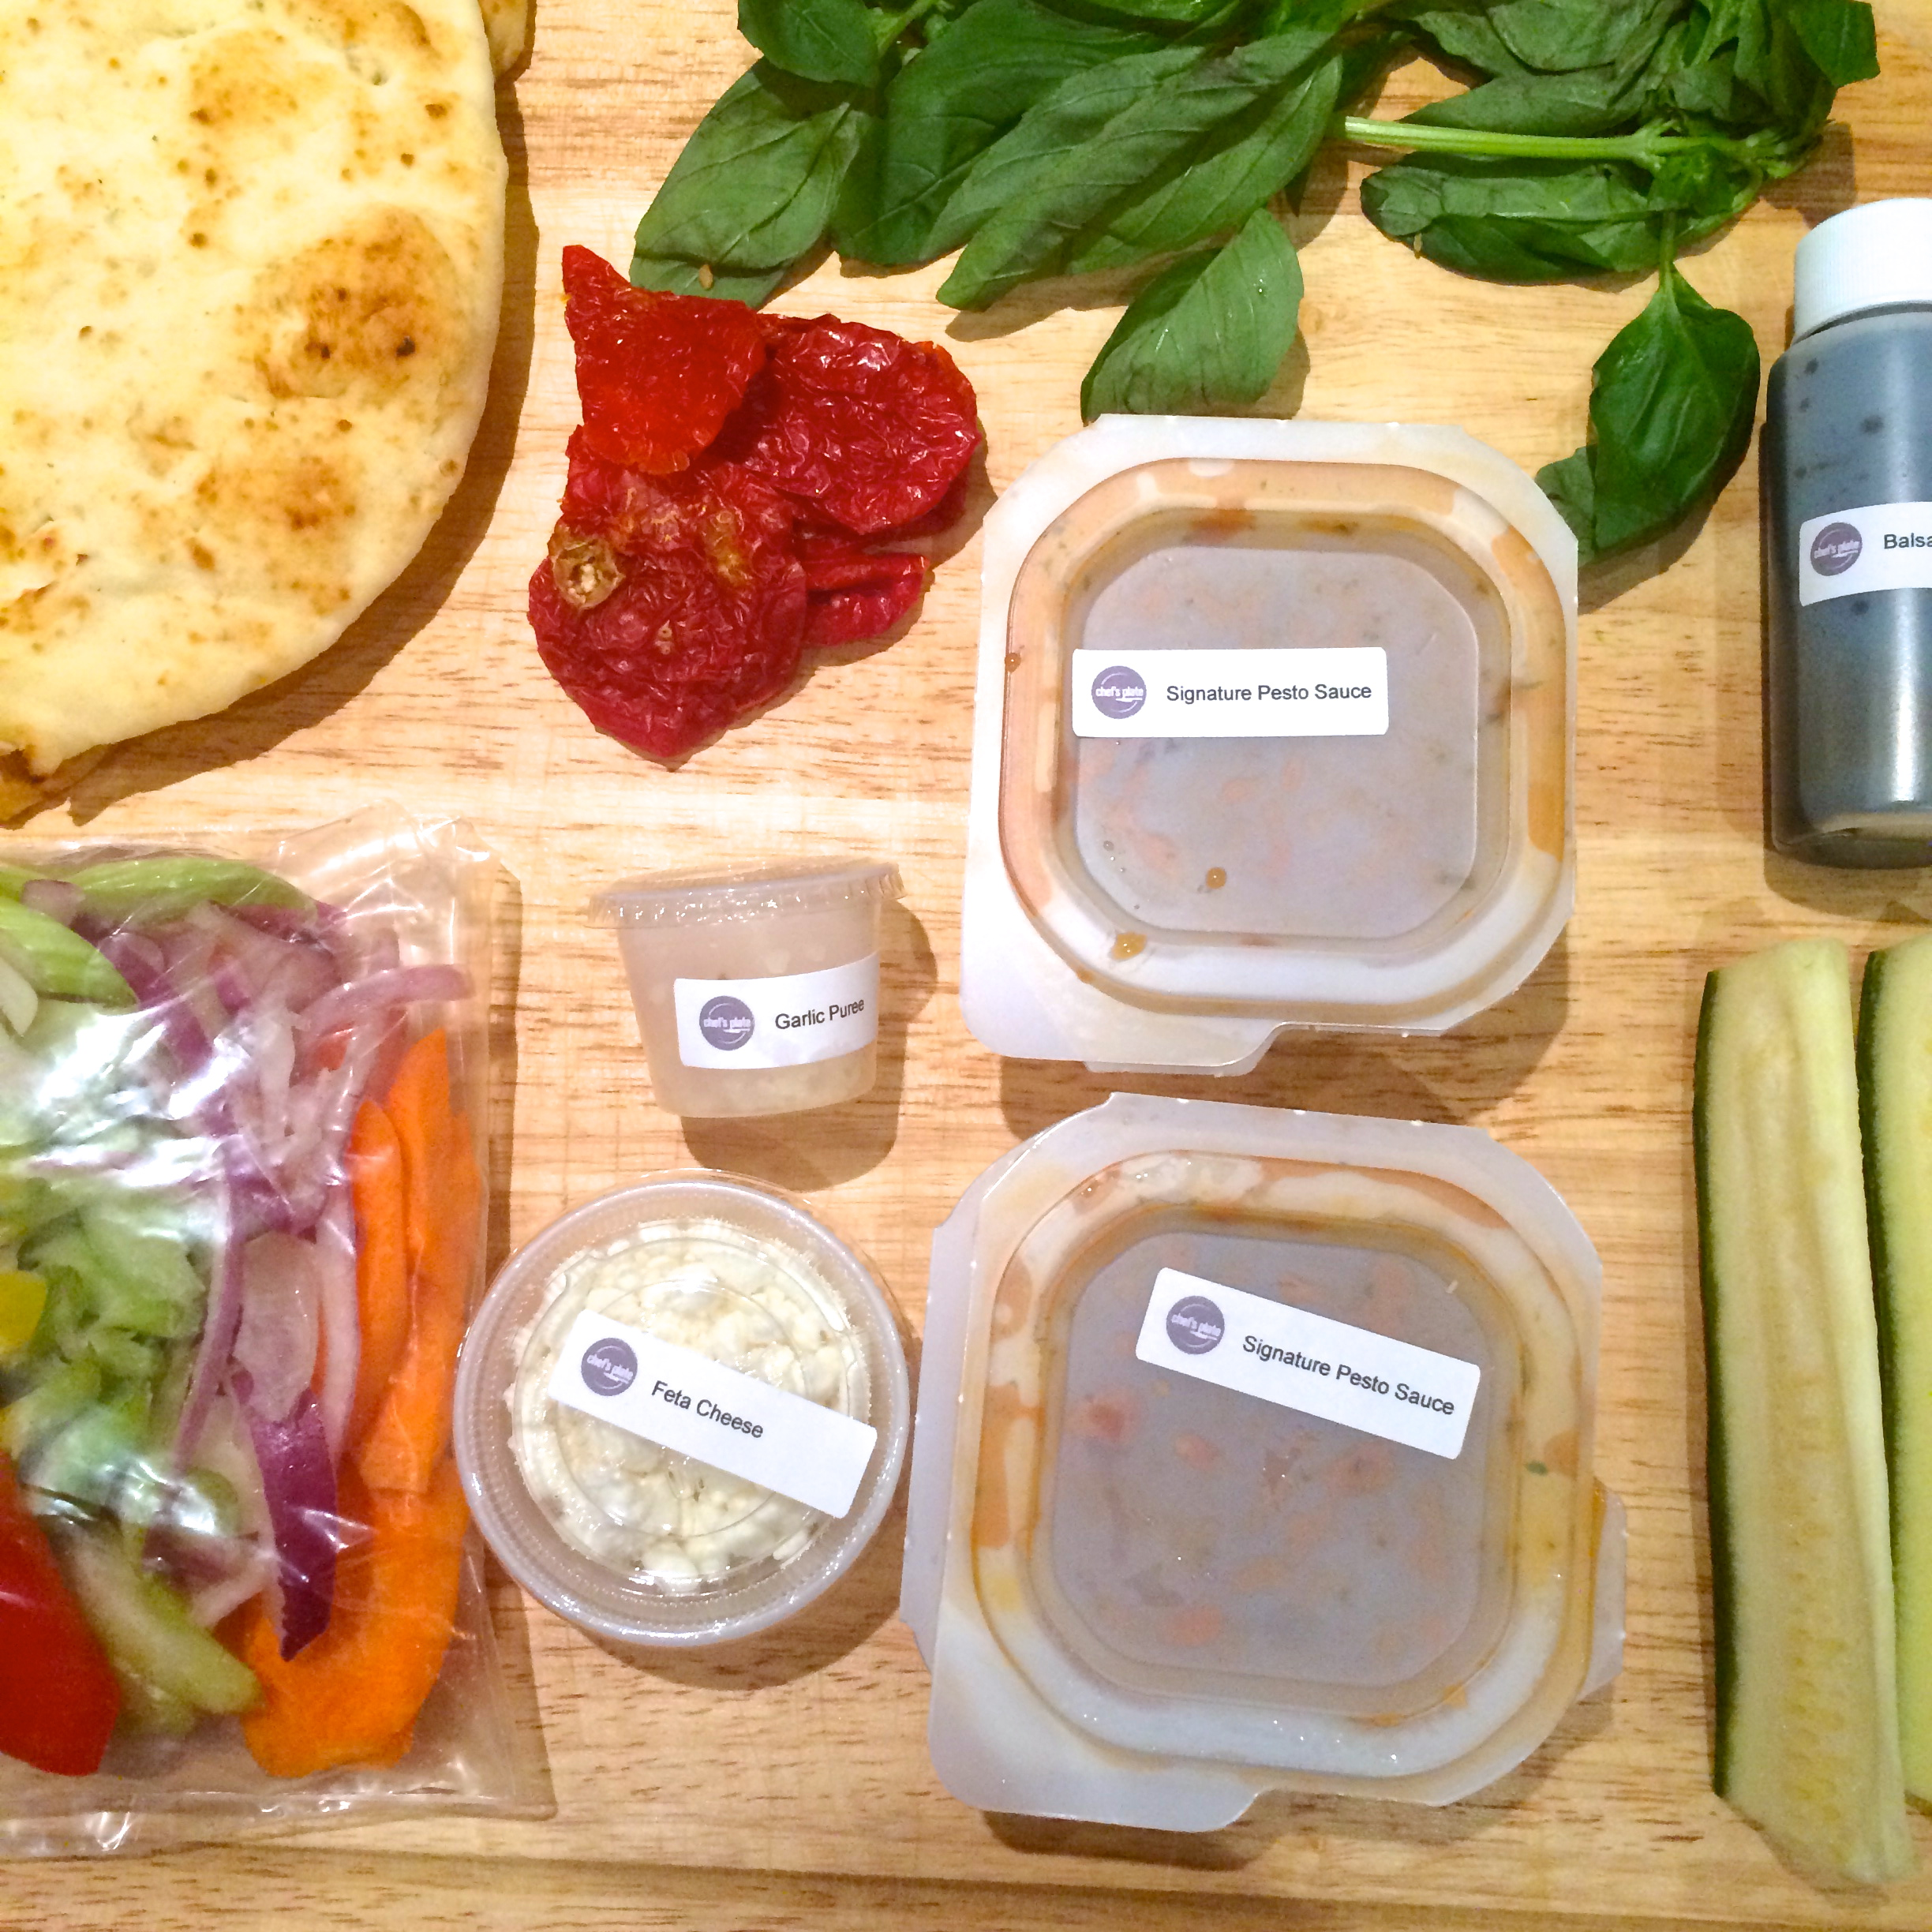 Meal Delivery Services Like Blue Apron in New Haven CT